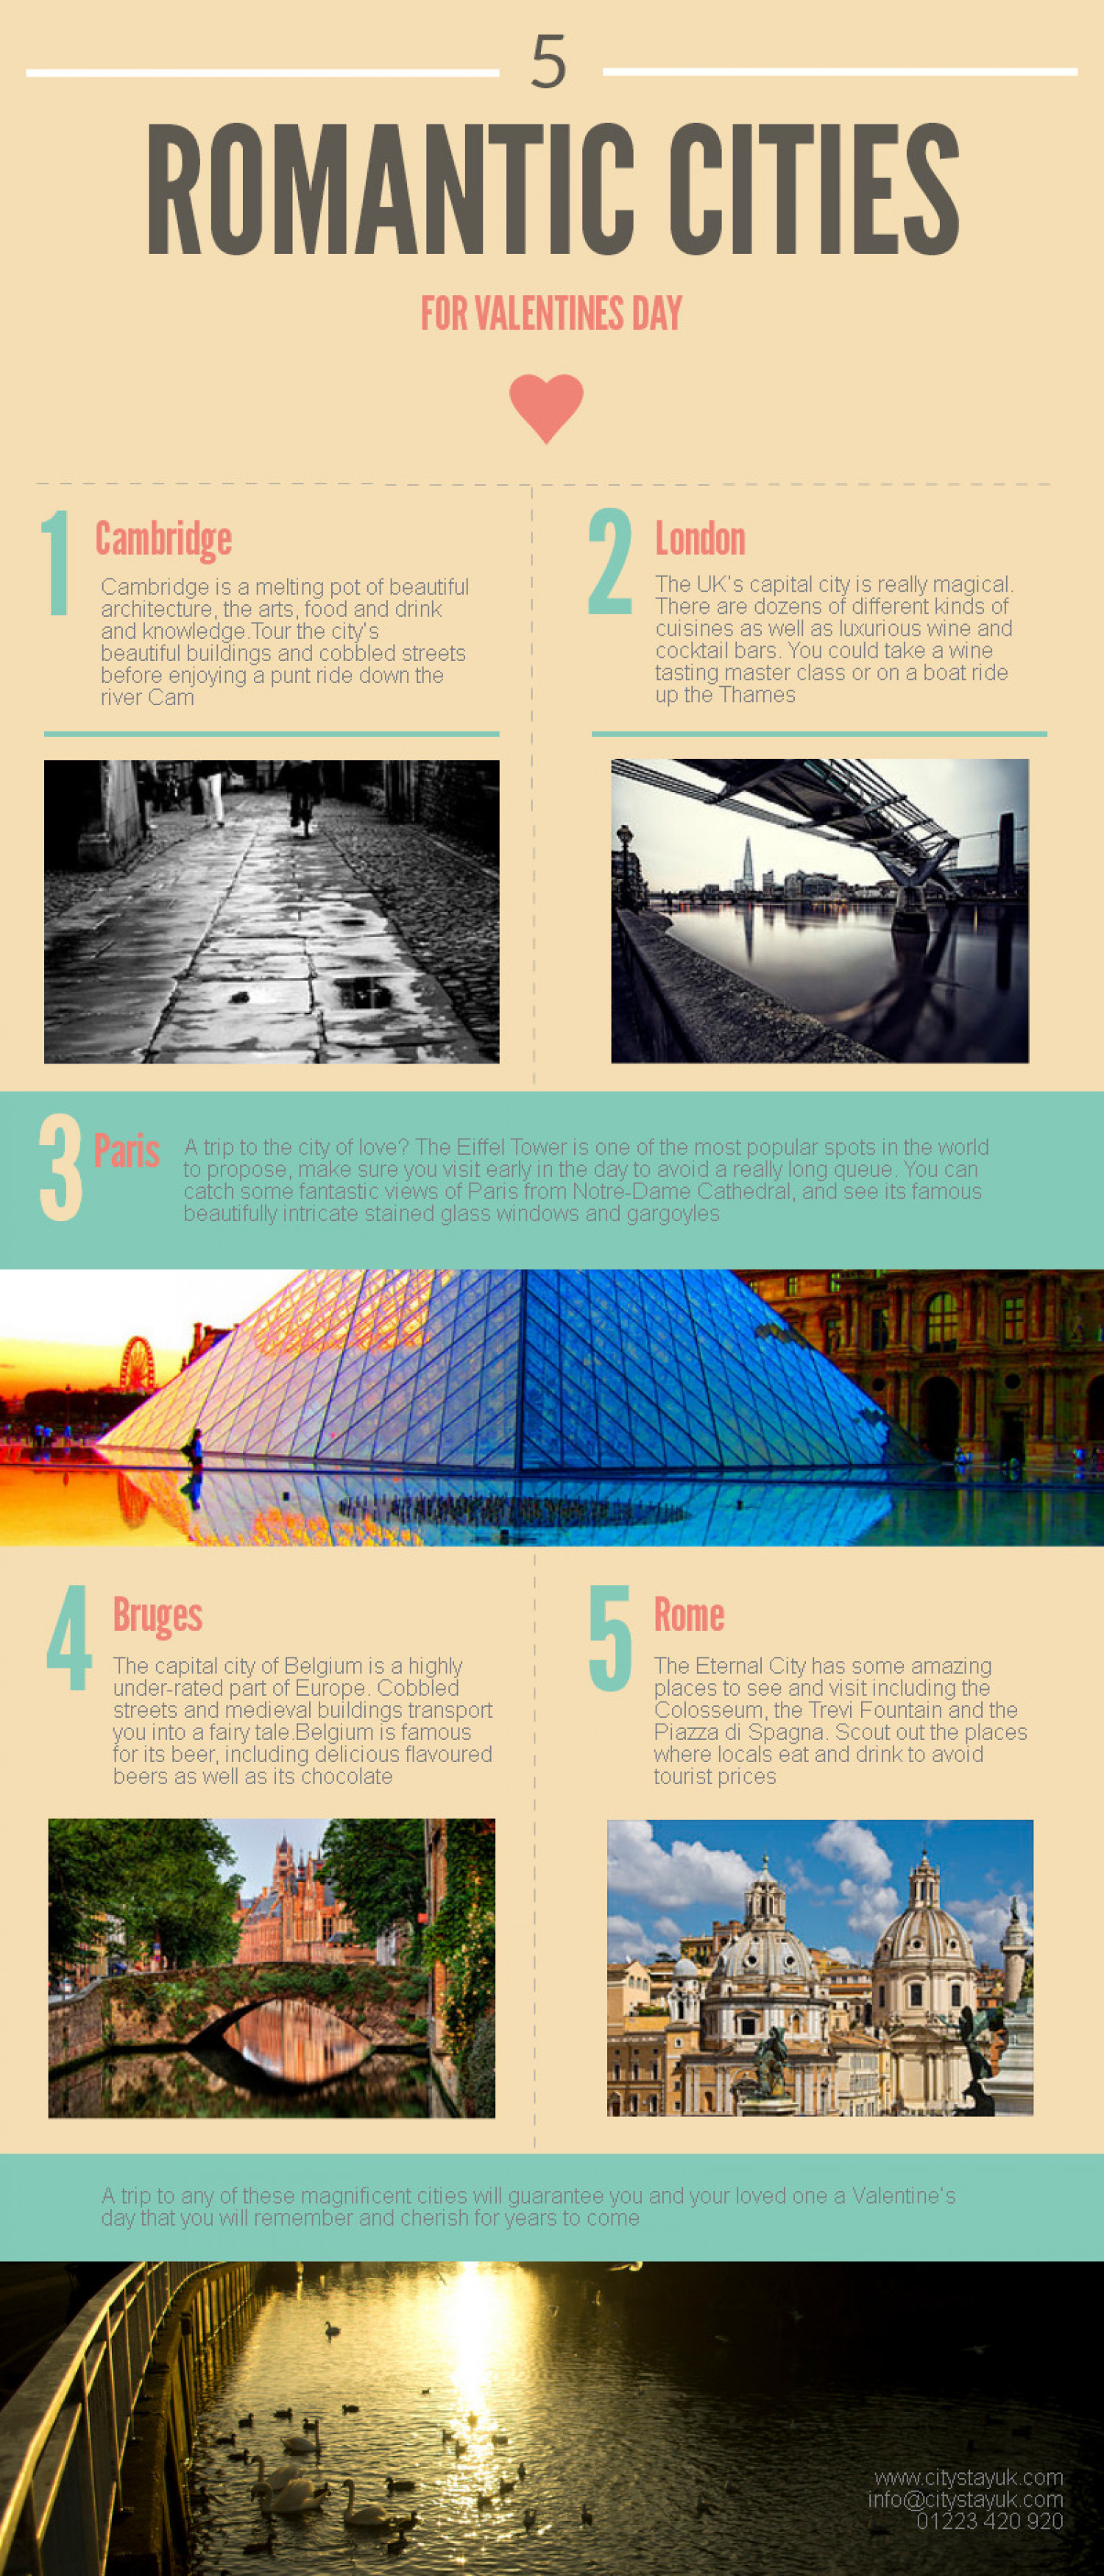 5 Romantic Cities for Valentine's Day Infographic